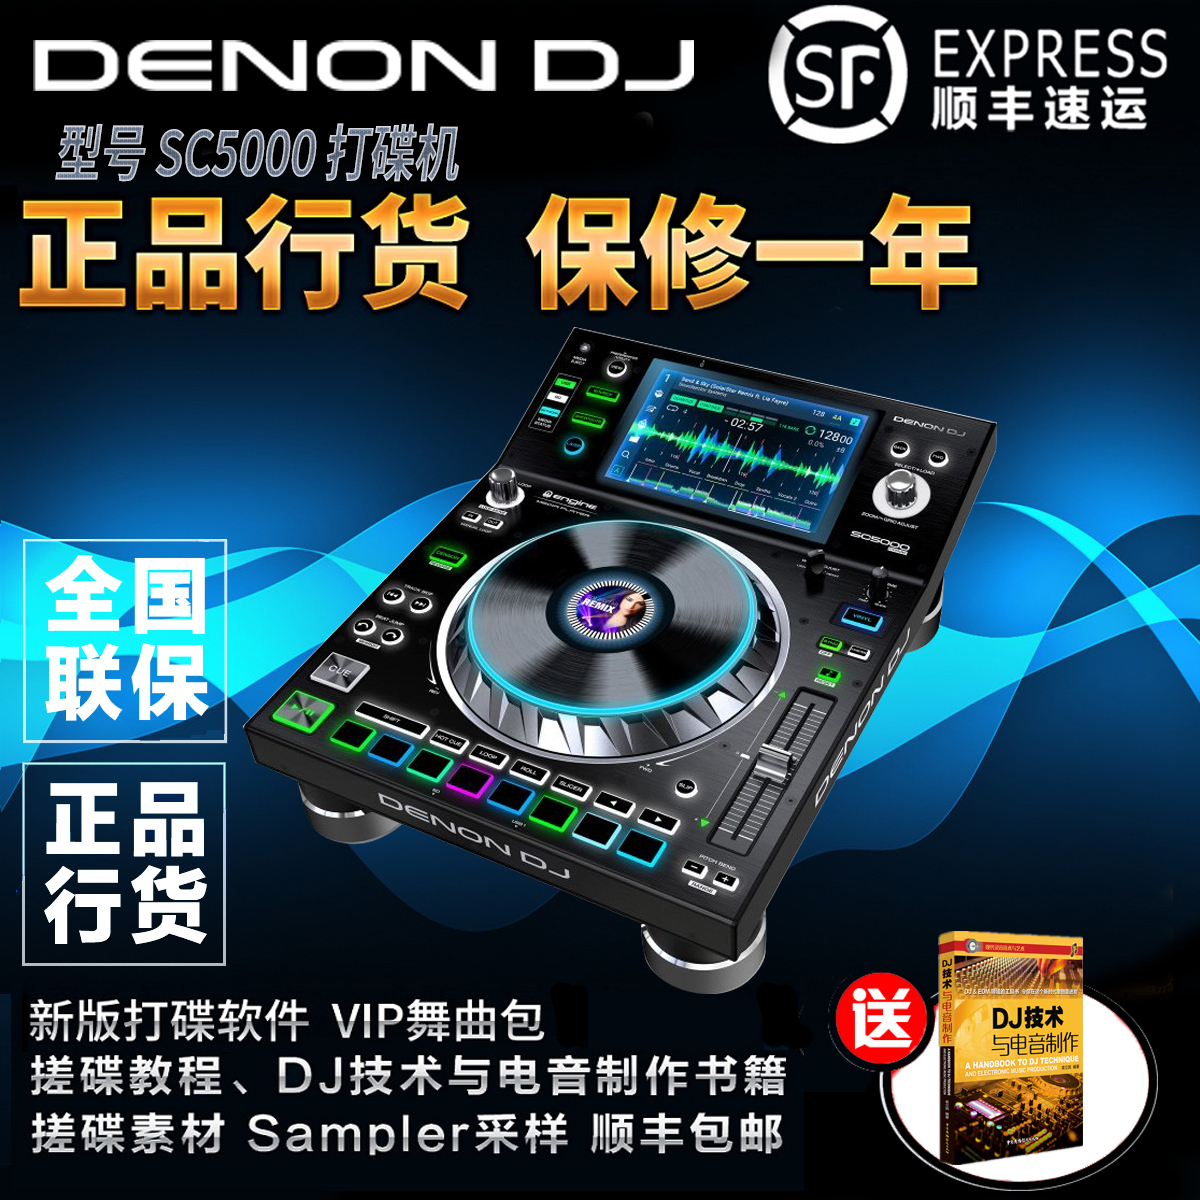 Tianlong DENON DJ SC5000 supports U disk SD card player super large color screen with 8 mats in stock